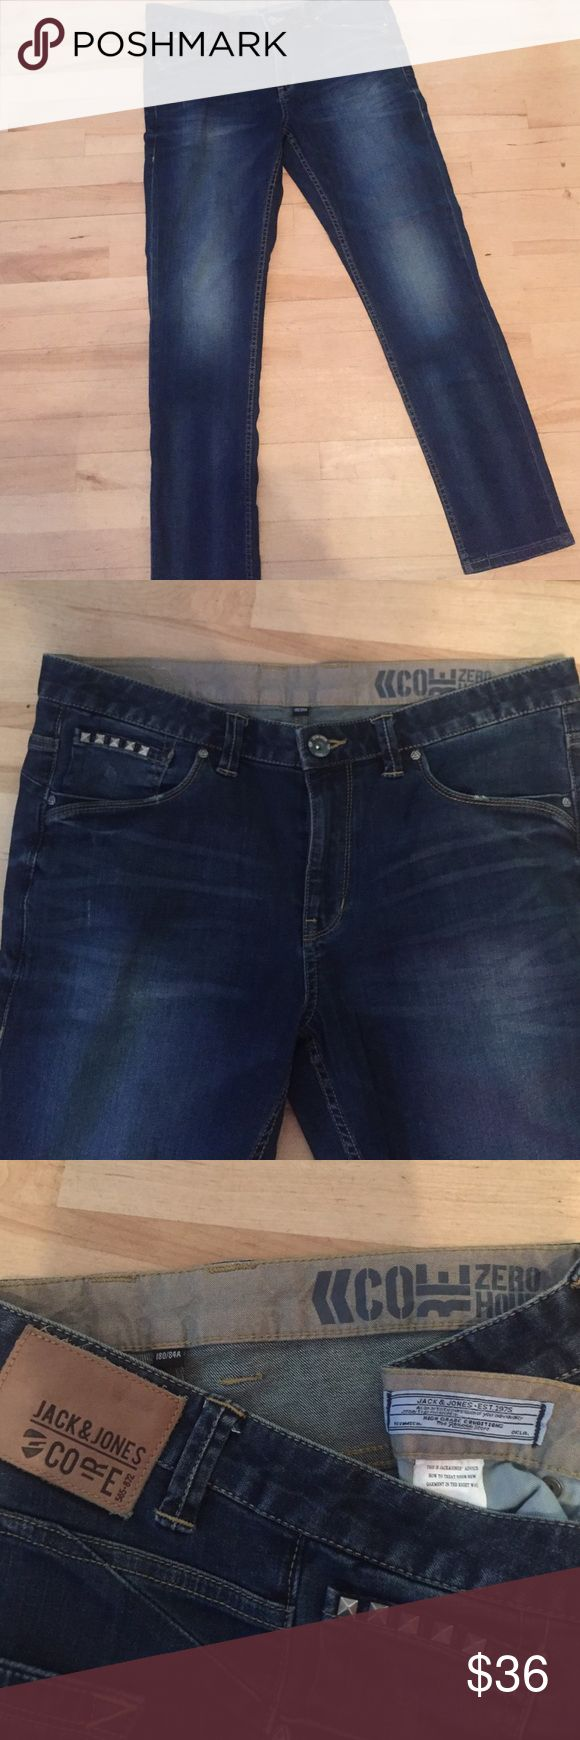 LIKE NEW Jack and Jones JEANS⭐️ Jack and Jones Core like new jeans!! Great condition!⭐️studs on front pocket. Size 34/32 Jack and Jones Jeans